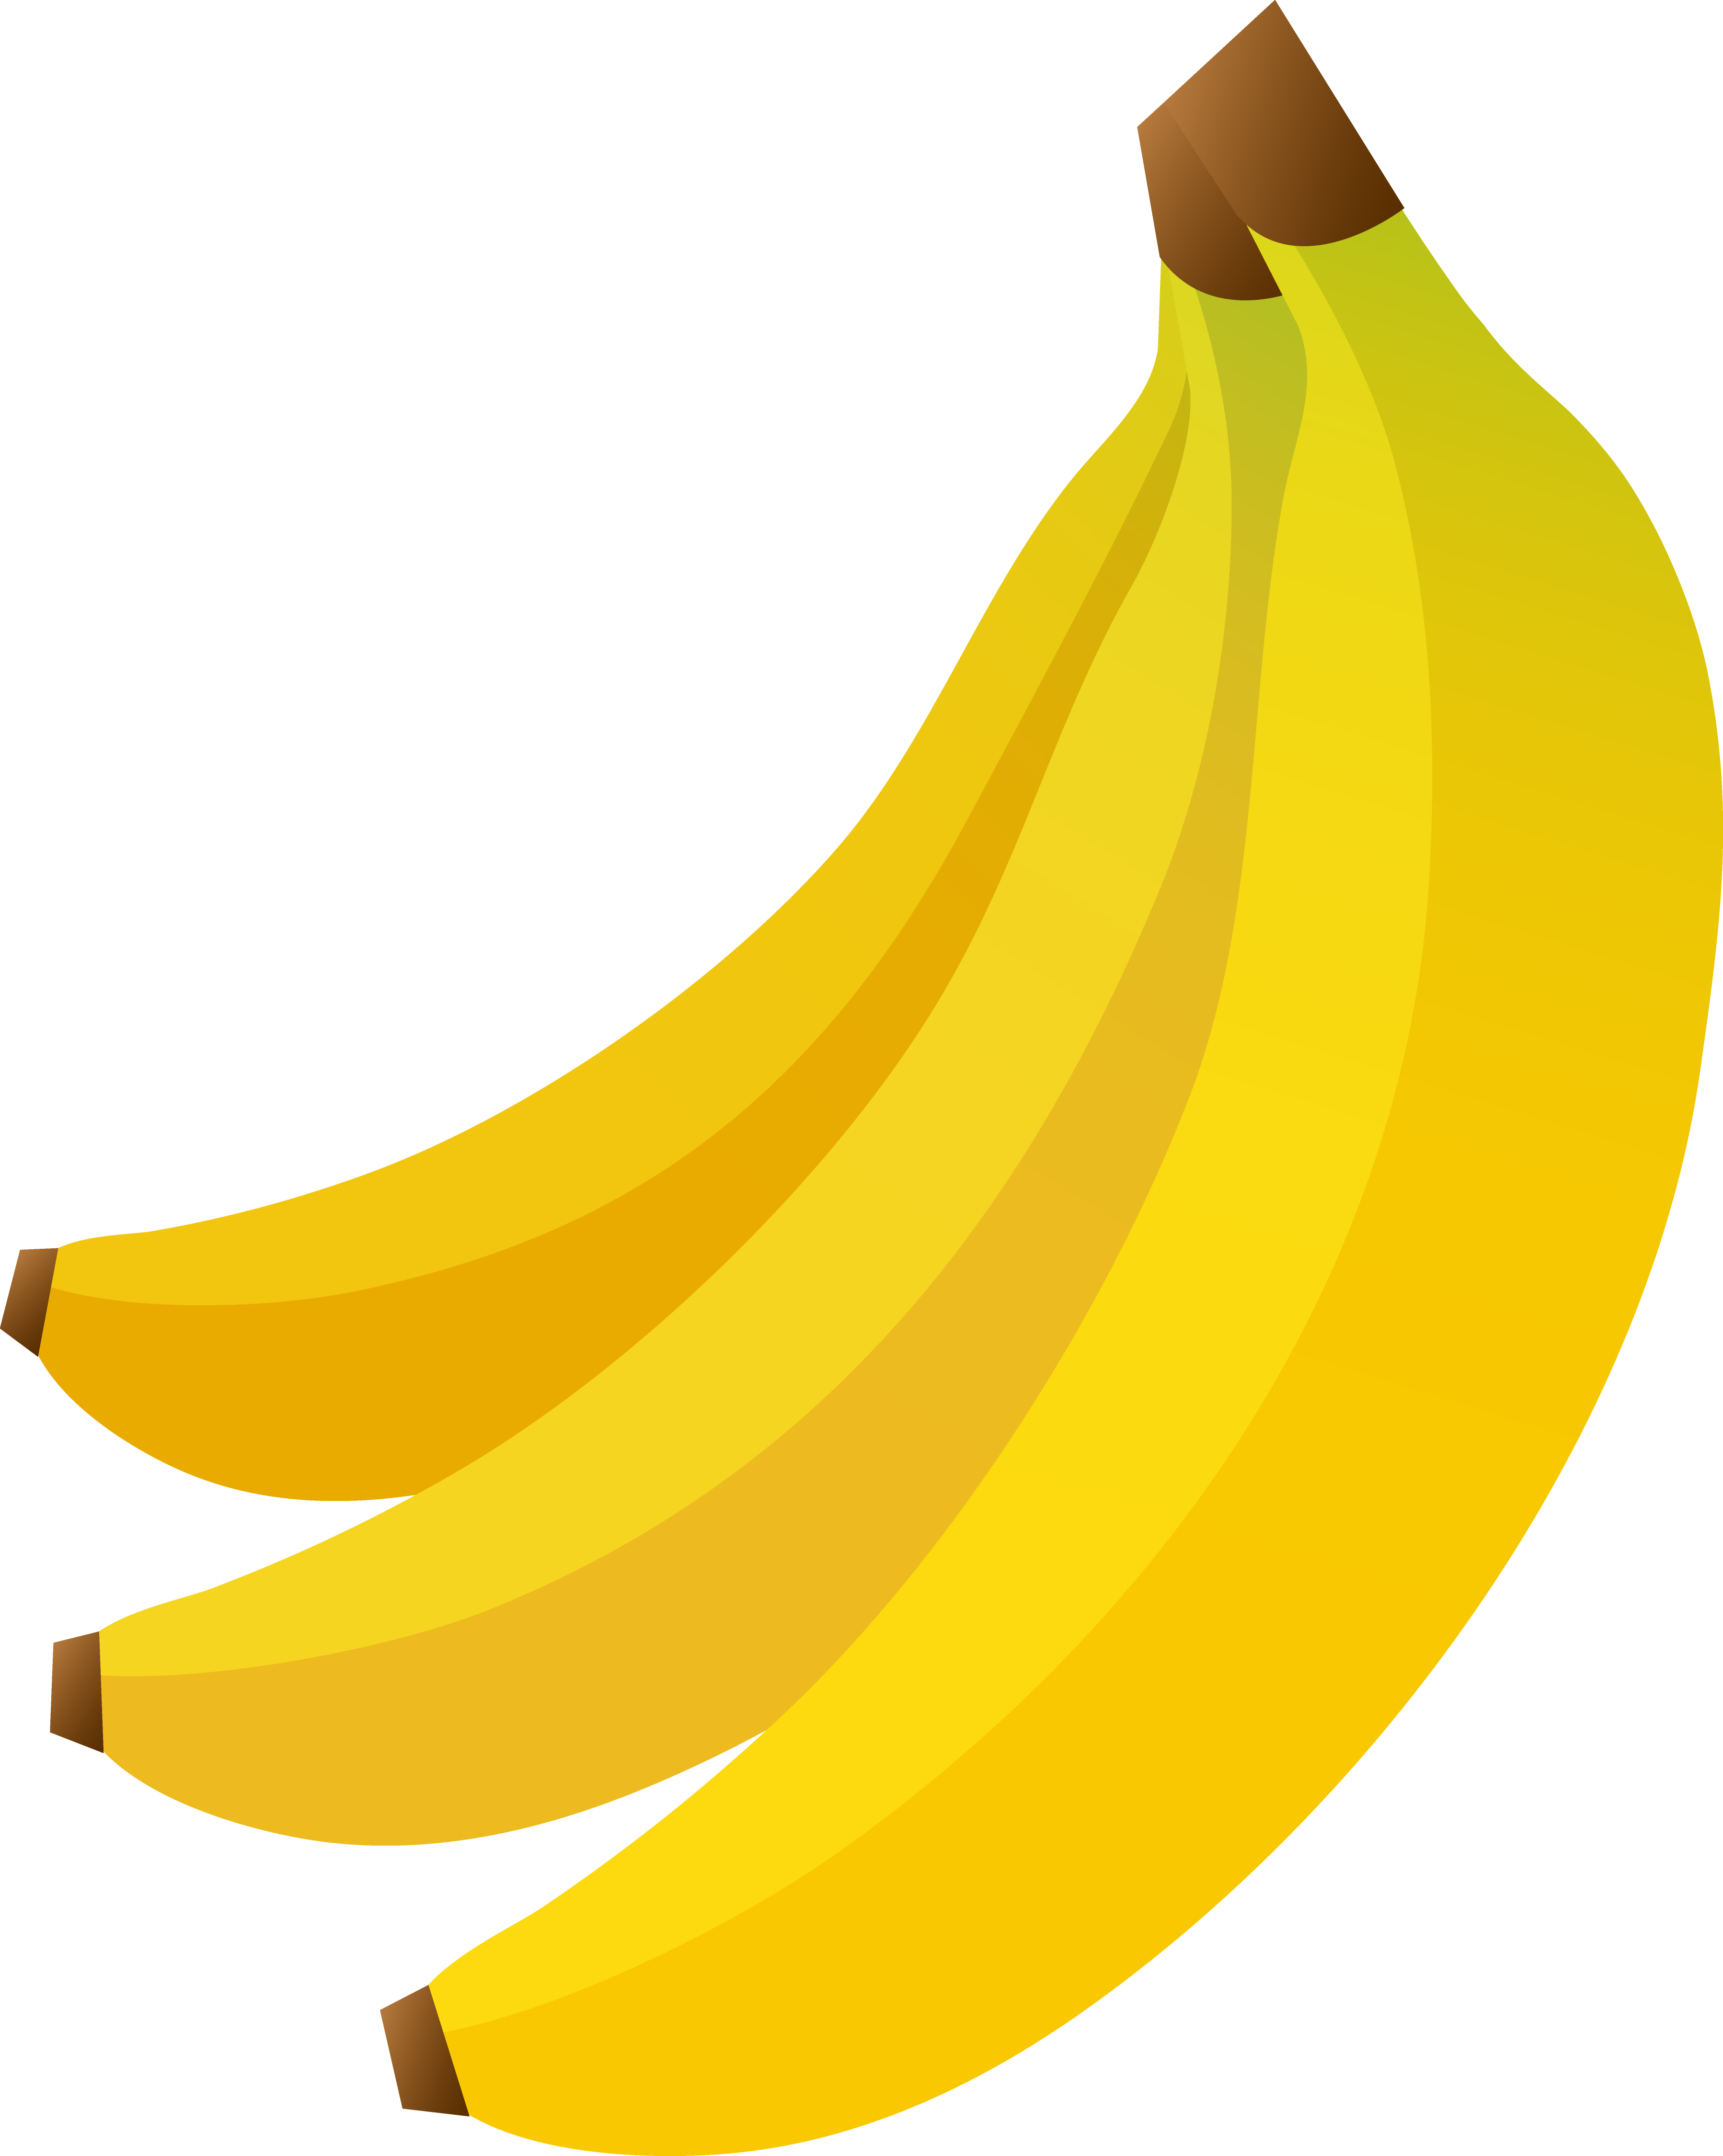 Bunch of three free. Bananas png graphic black and white download